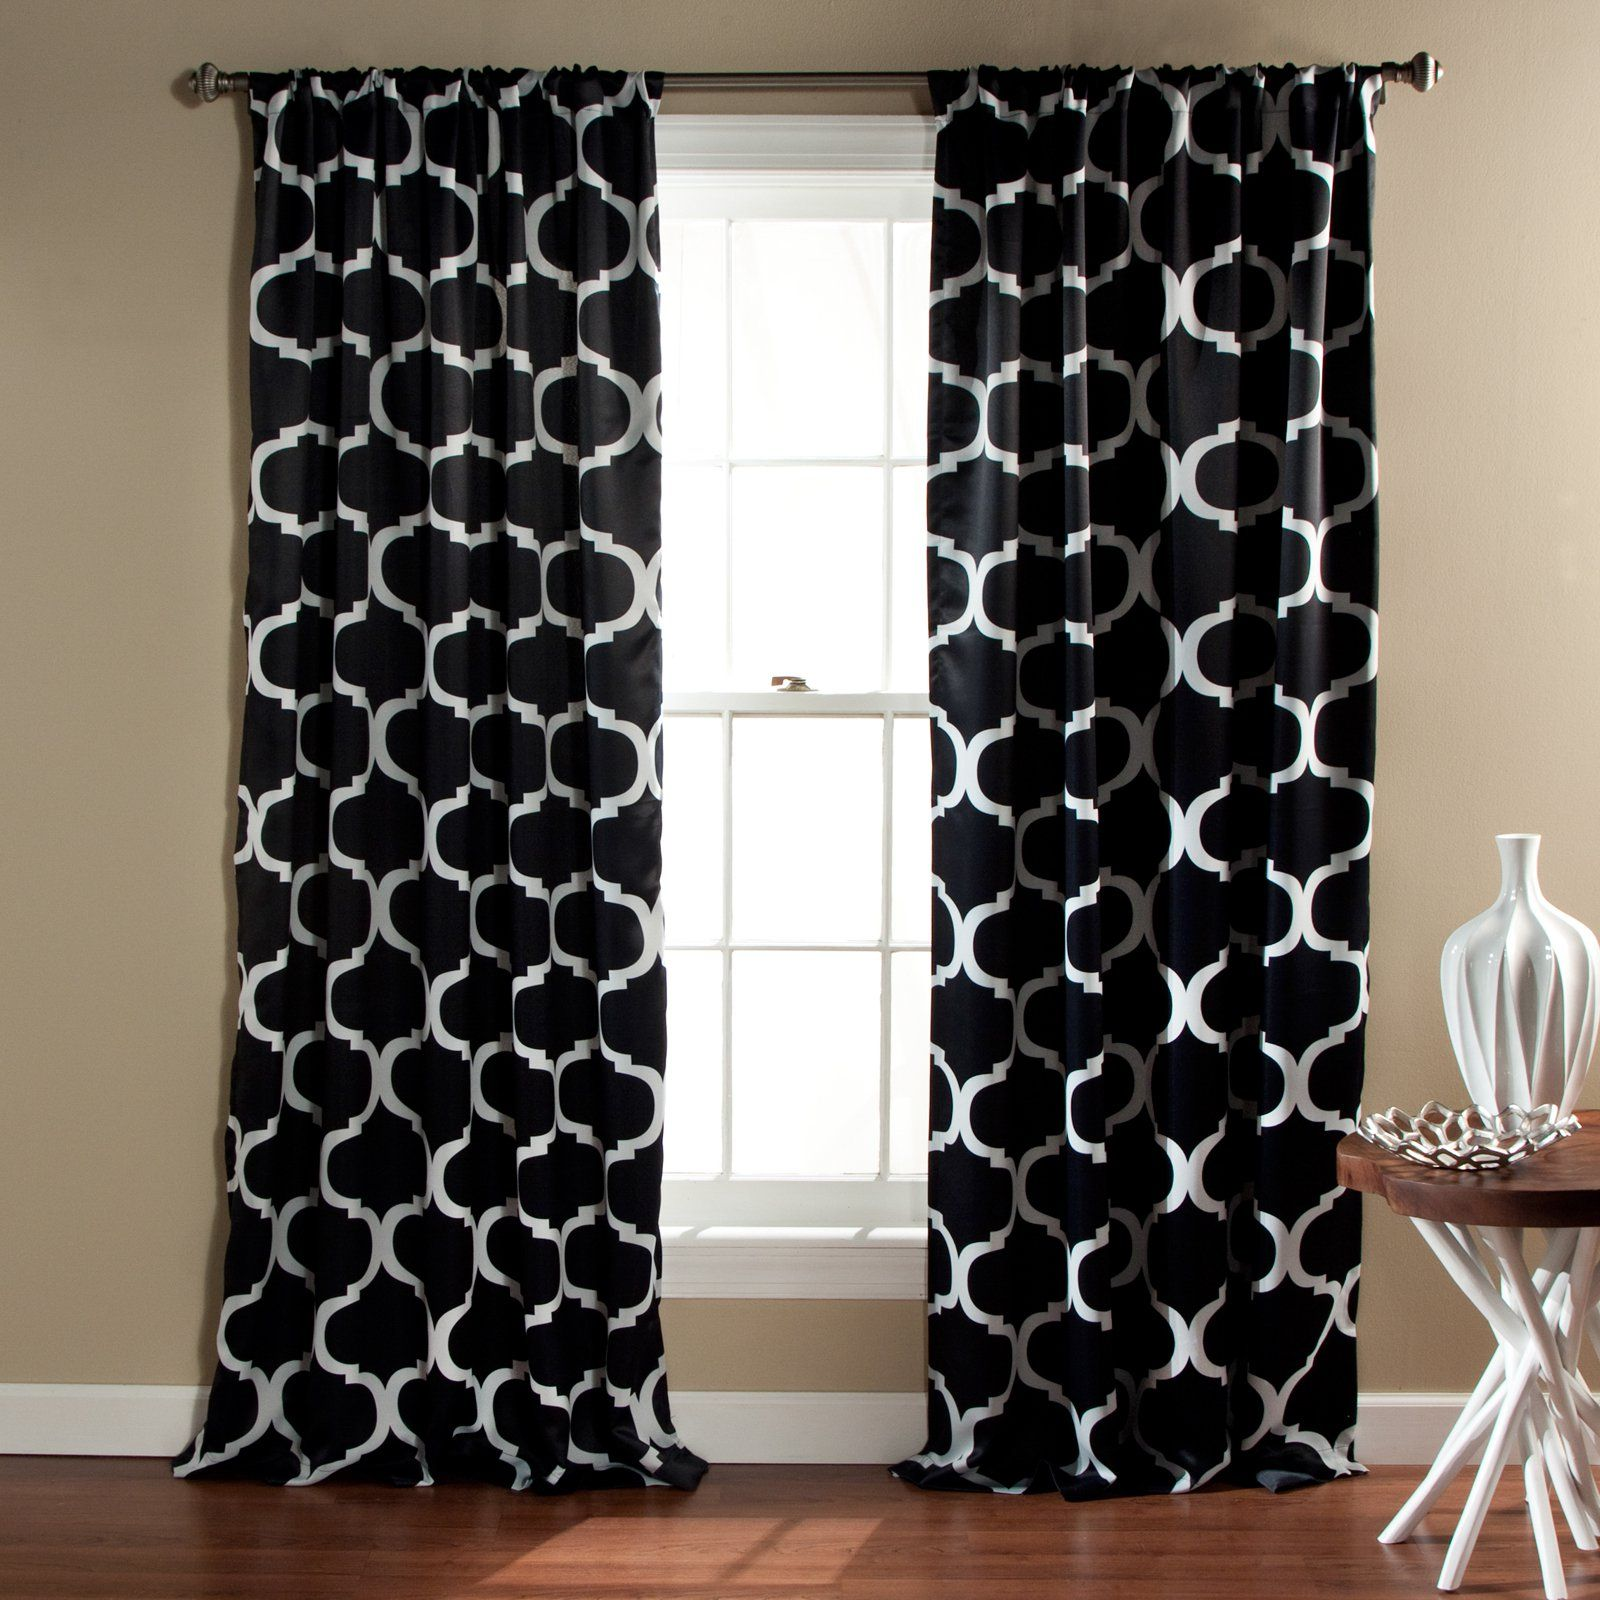 Window coverings to block sun  triangle home fashions geo blackout rod pocket curtain pair  from